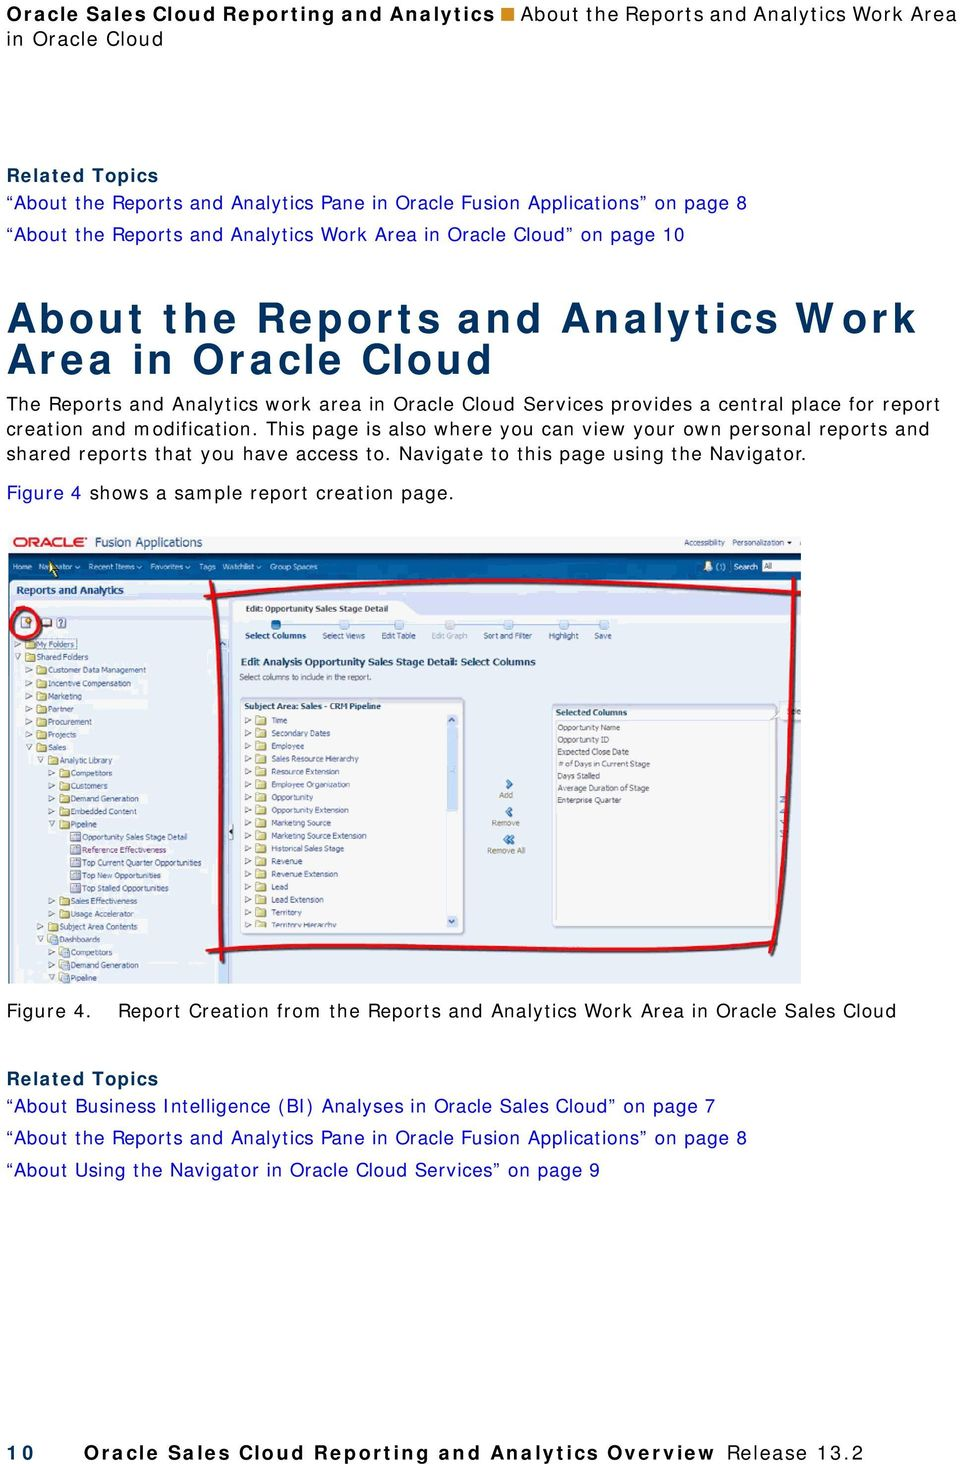 central place for report creation and modification. This page is also where you can view your own personal reports and shared reports that you have access to.